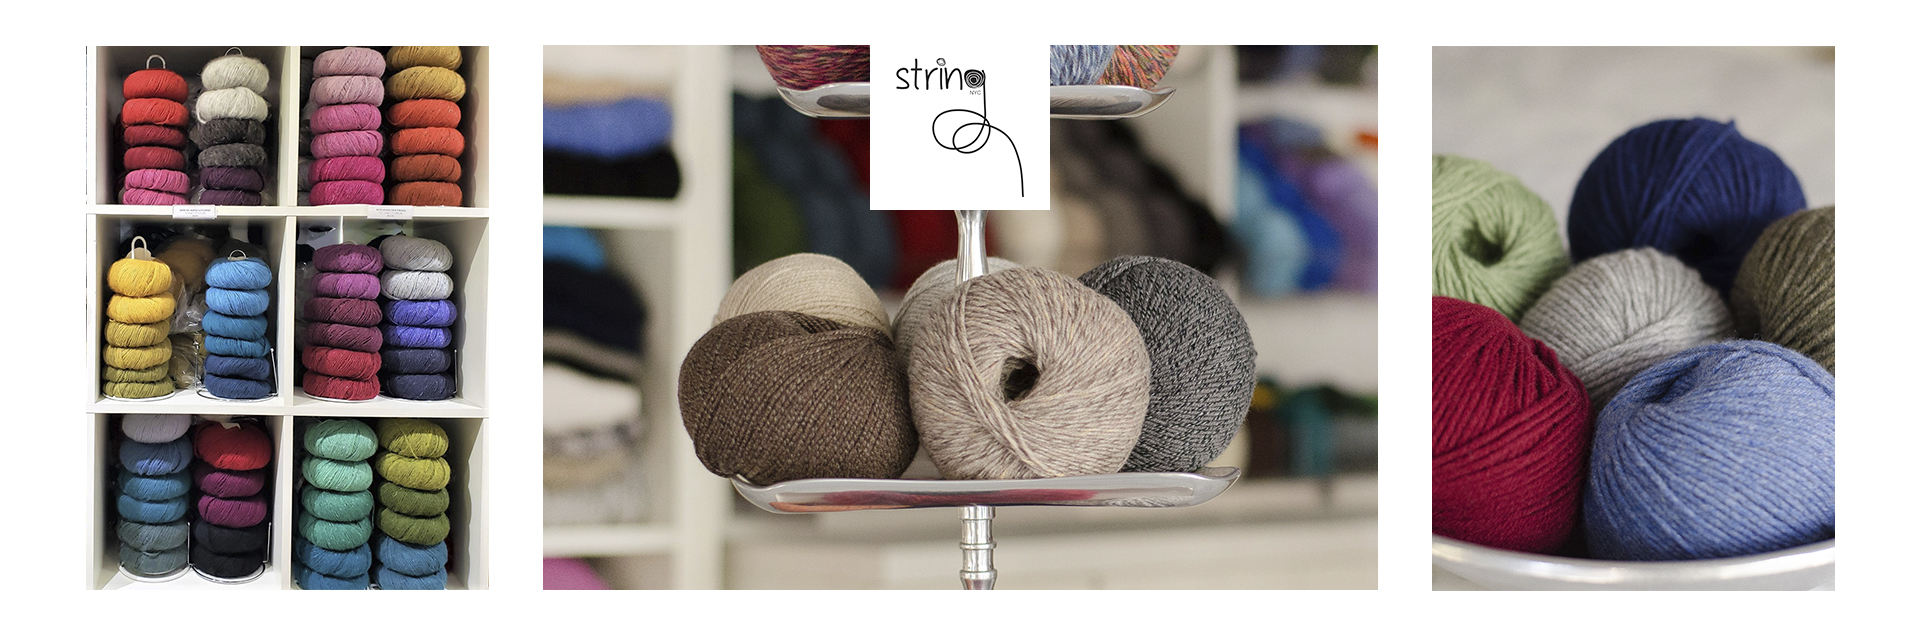 String continues the vision, from when we began in 2002 as a tiny gem of a shop in the heart of New York City's luxury fashion district, to offer the most luxurious yarns together with high fashion designs and superb customer service.